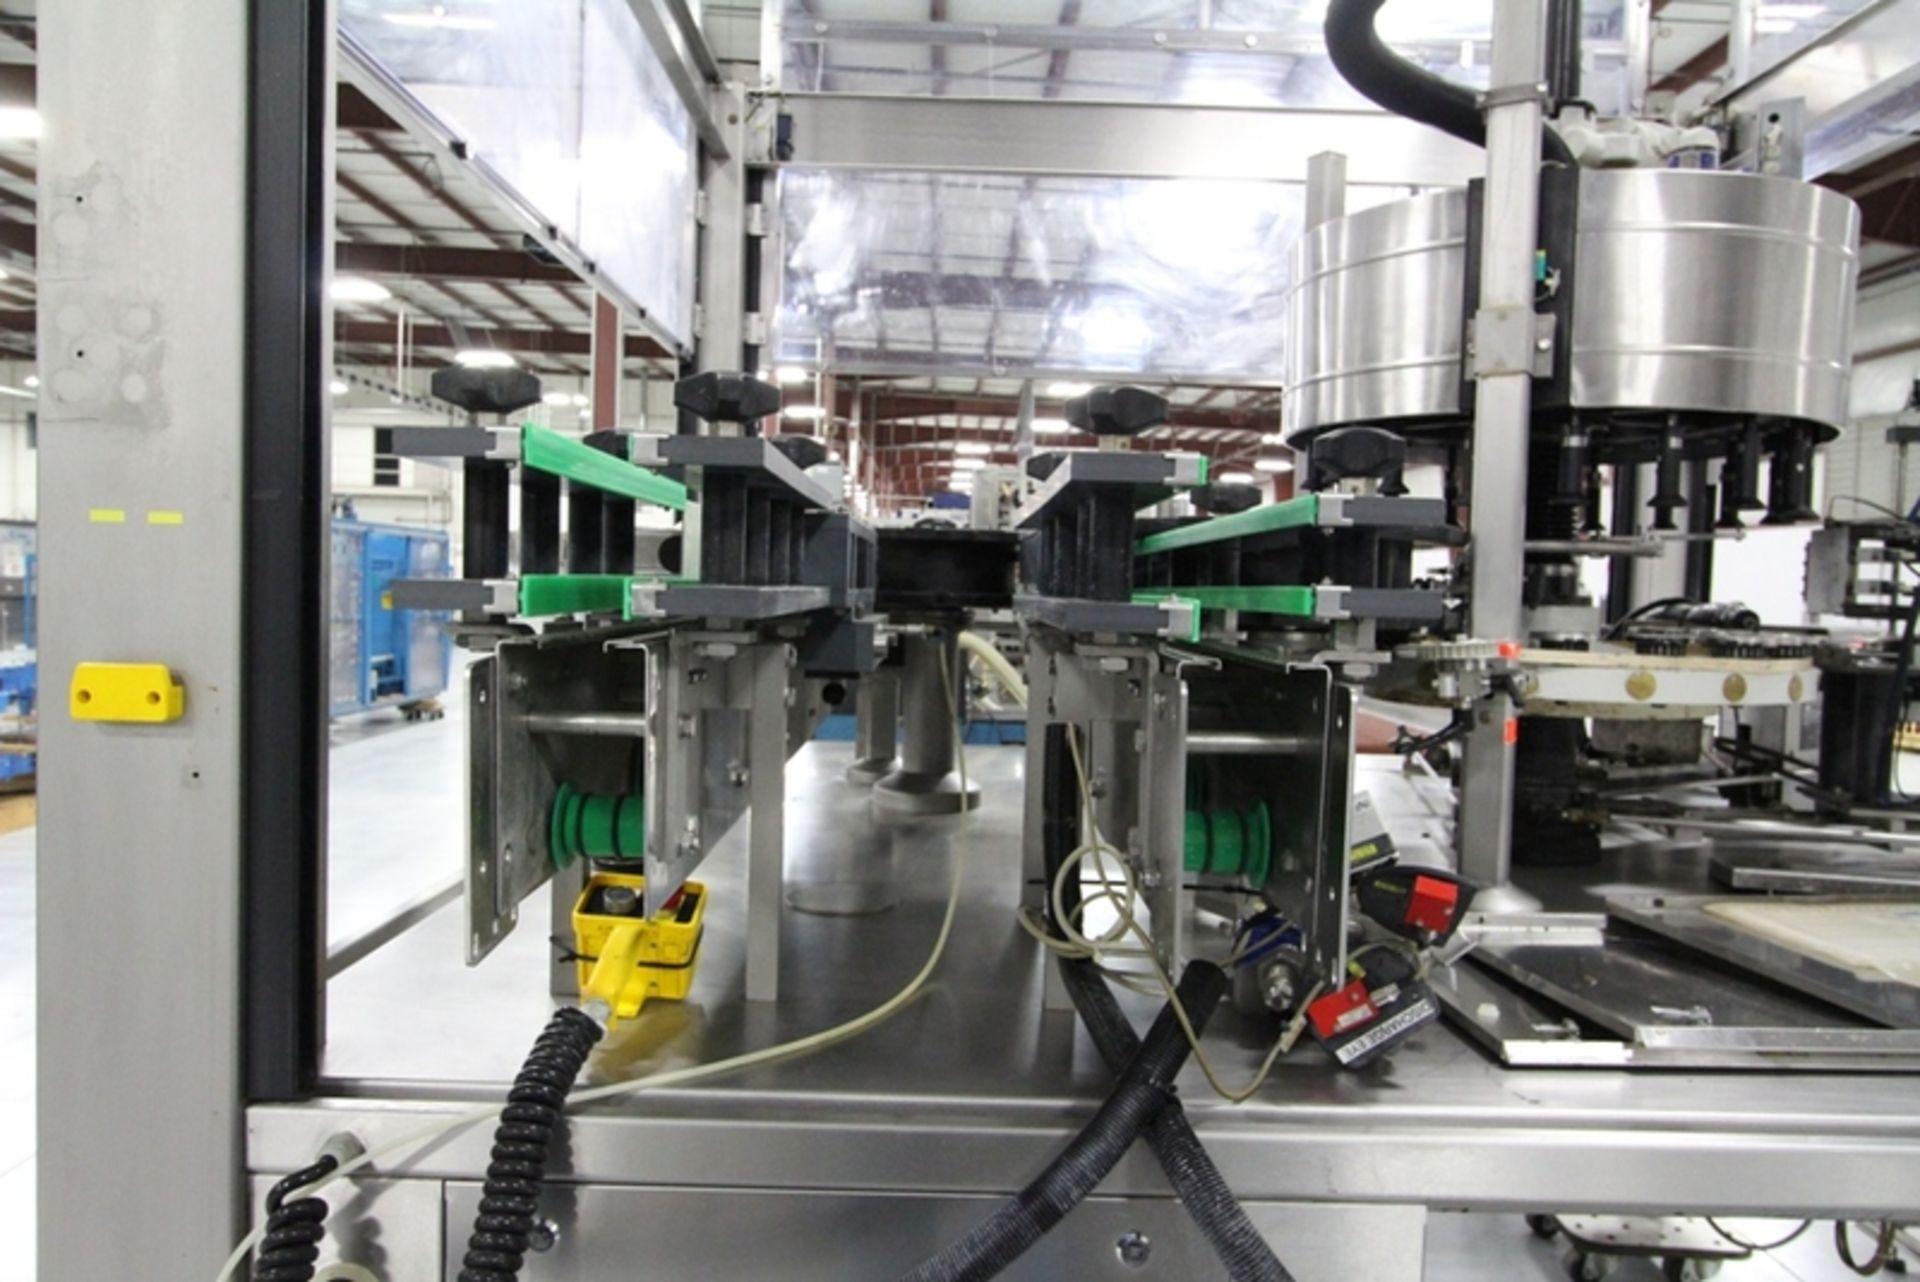 2003 Krones 18 Station Cut and Stack Labeler - Image 5 of 10